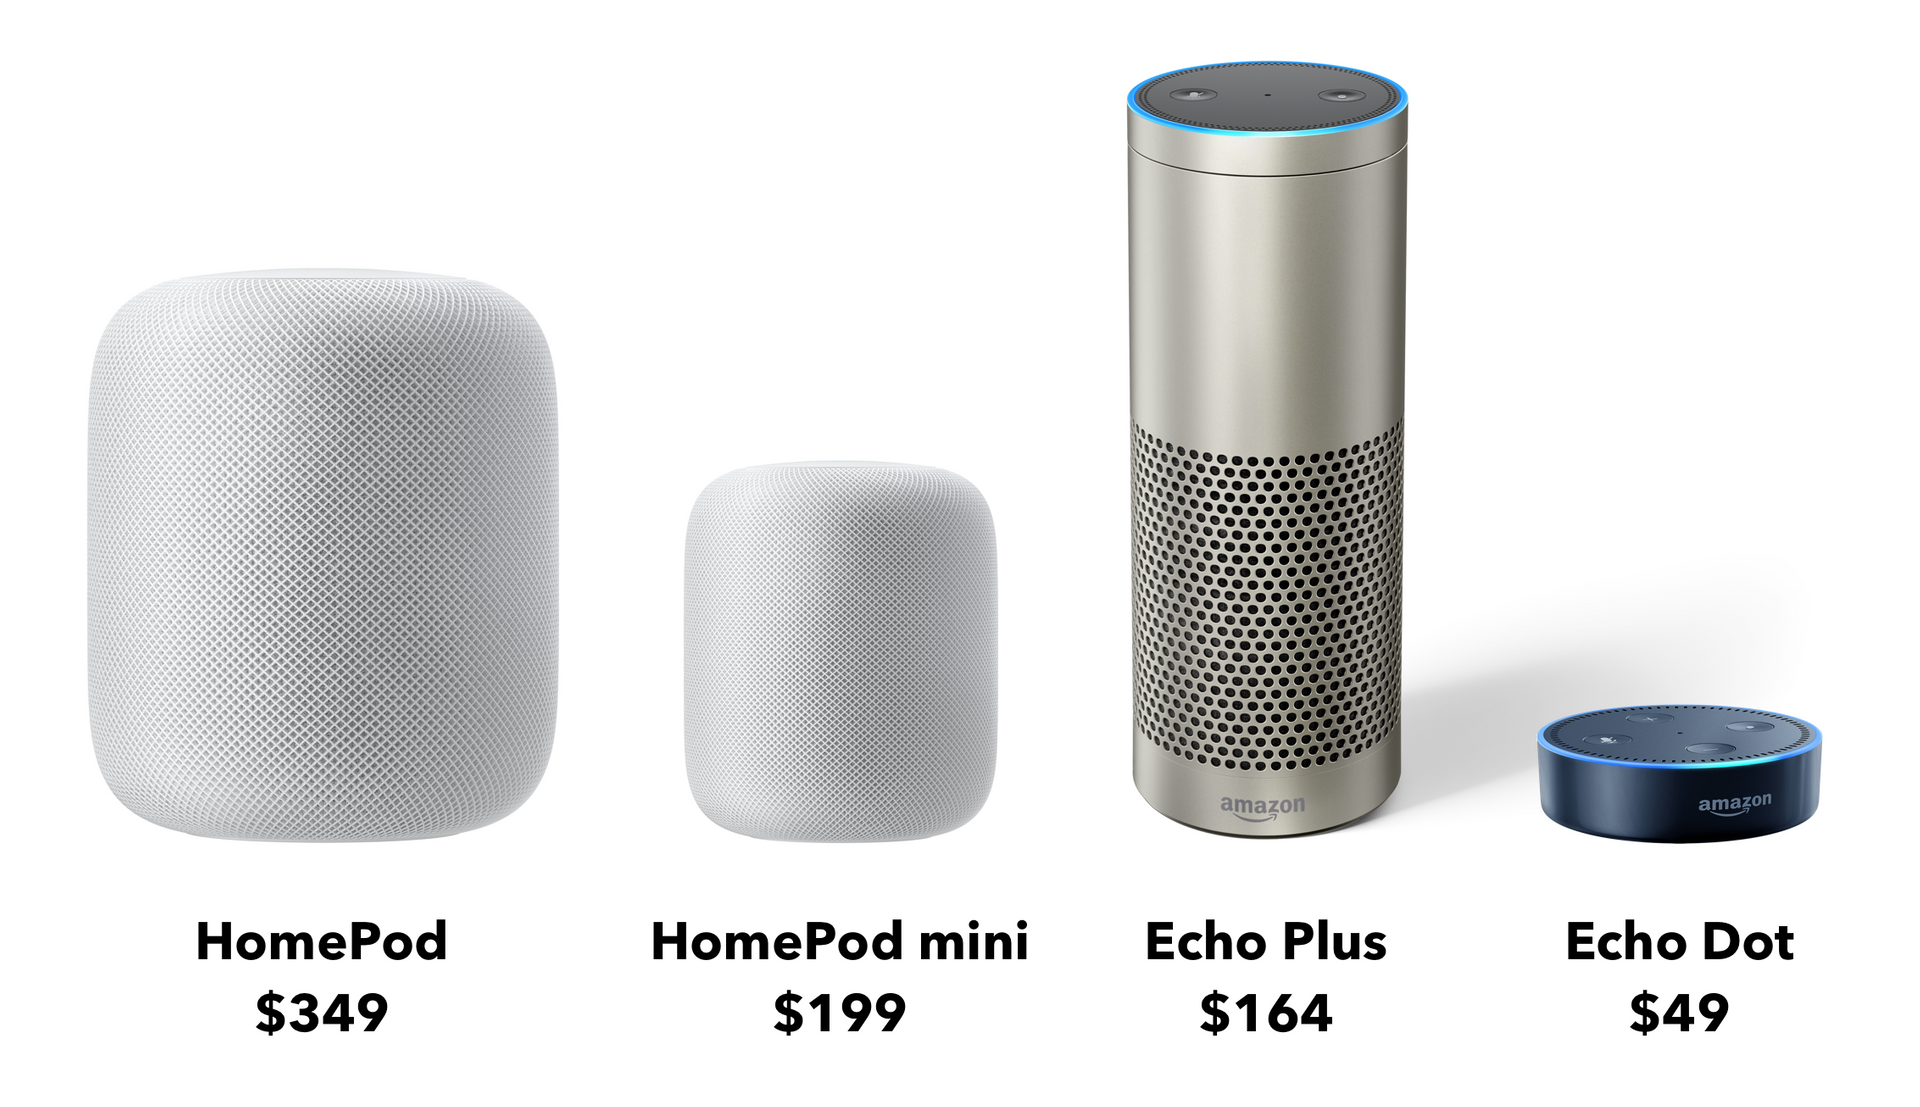 2018 Holiday Season Proposal: HomePod mini